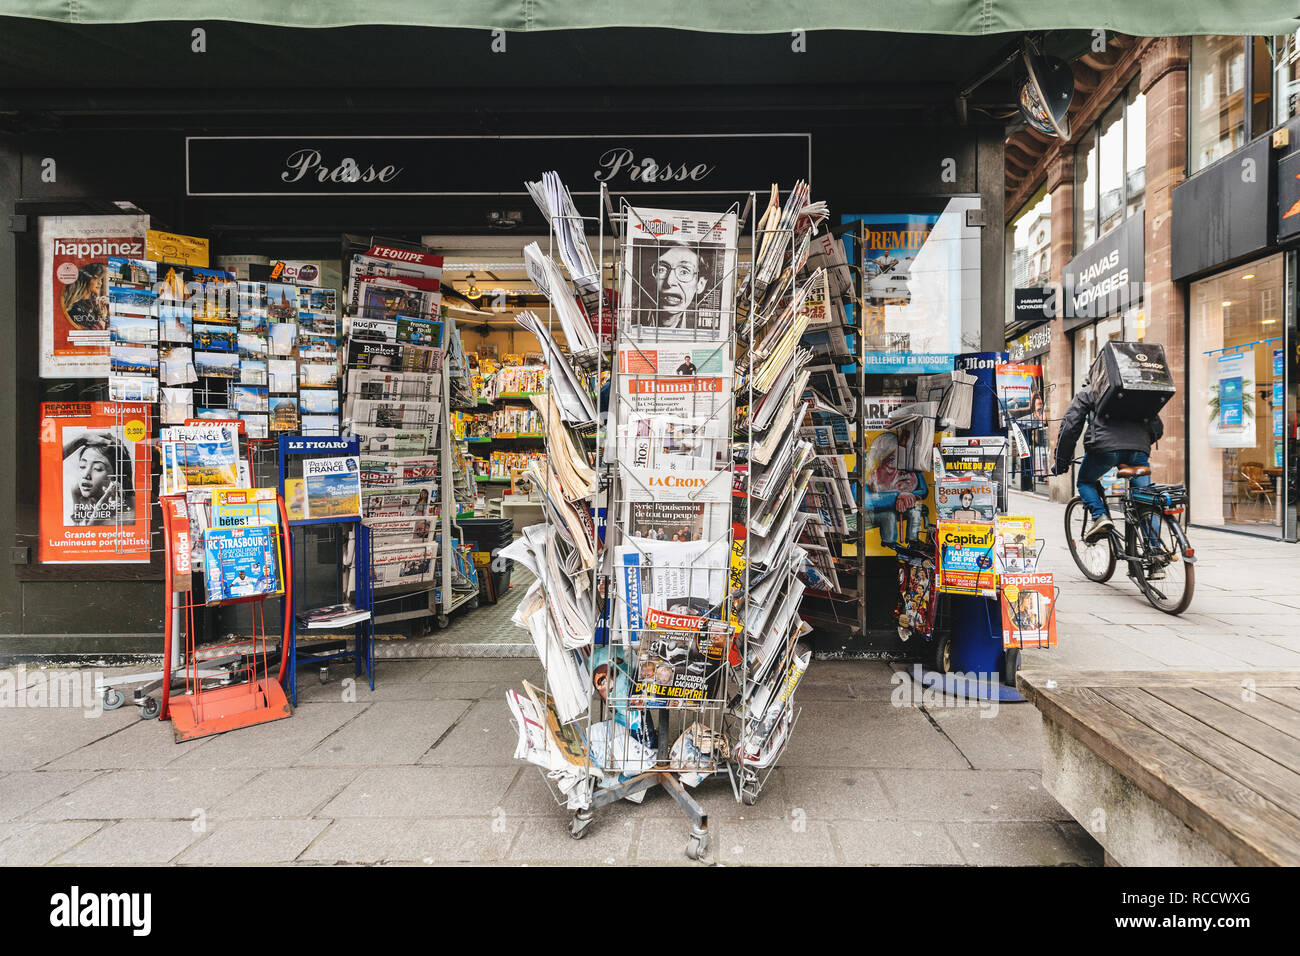 PARIS, FRANCE - MAR 15, 2018: International newspapes stack with portrait of Stephen Hawking the English theoretical physicist, cosmologist dead on 14 March 2018 on sale in Paris kisok - Stock Image